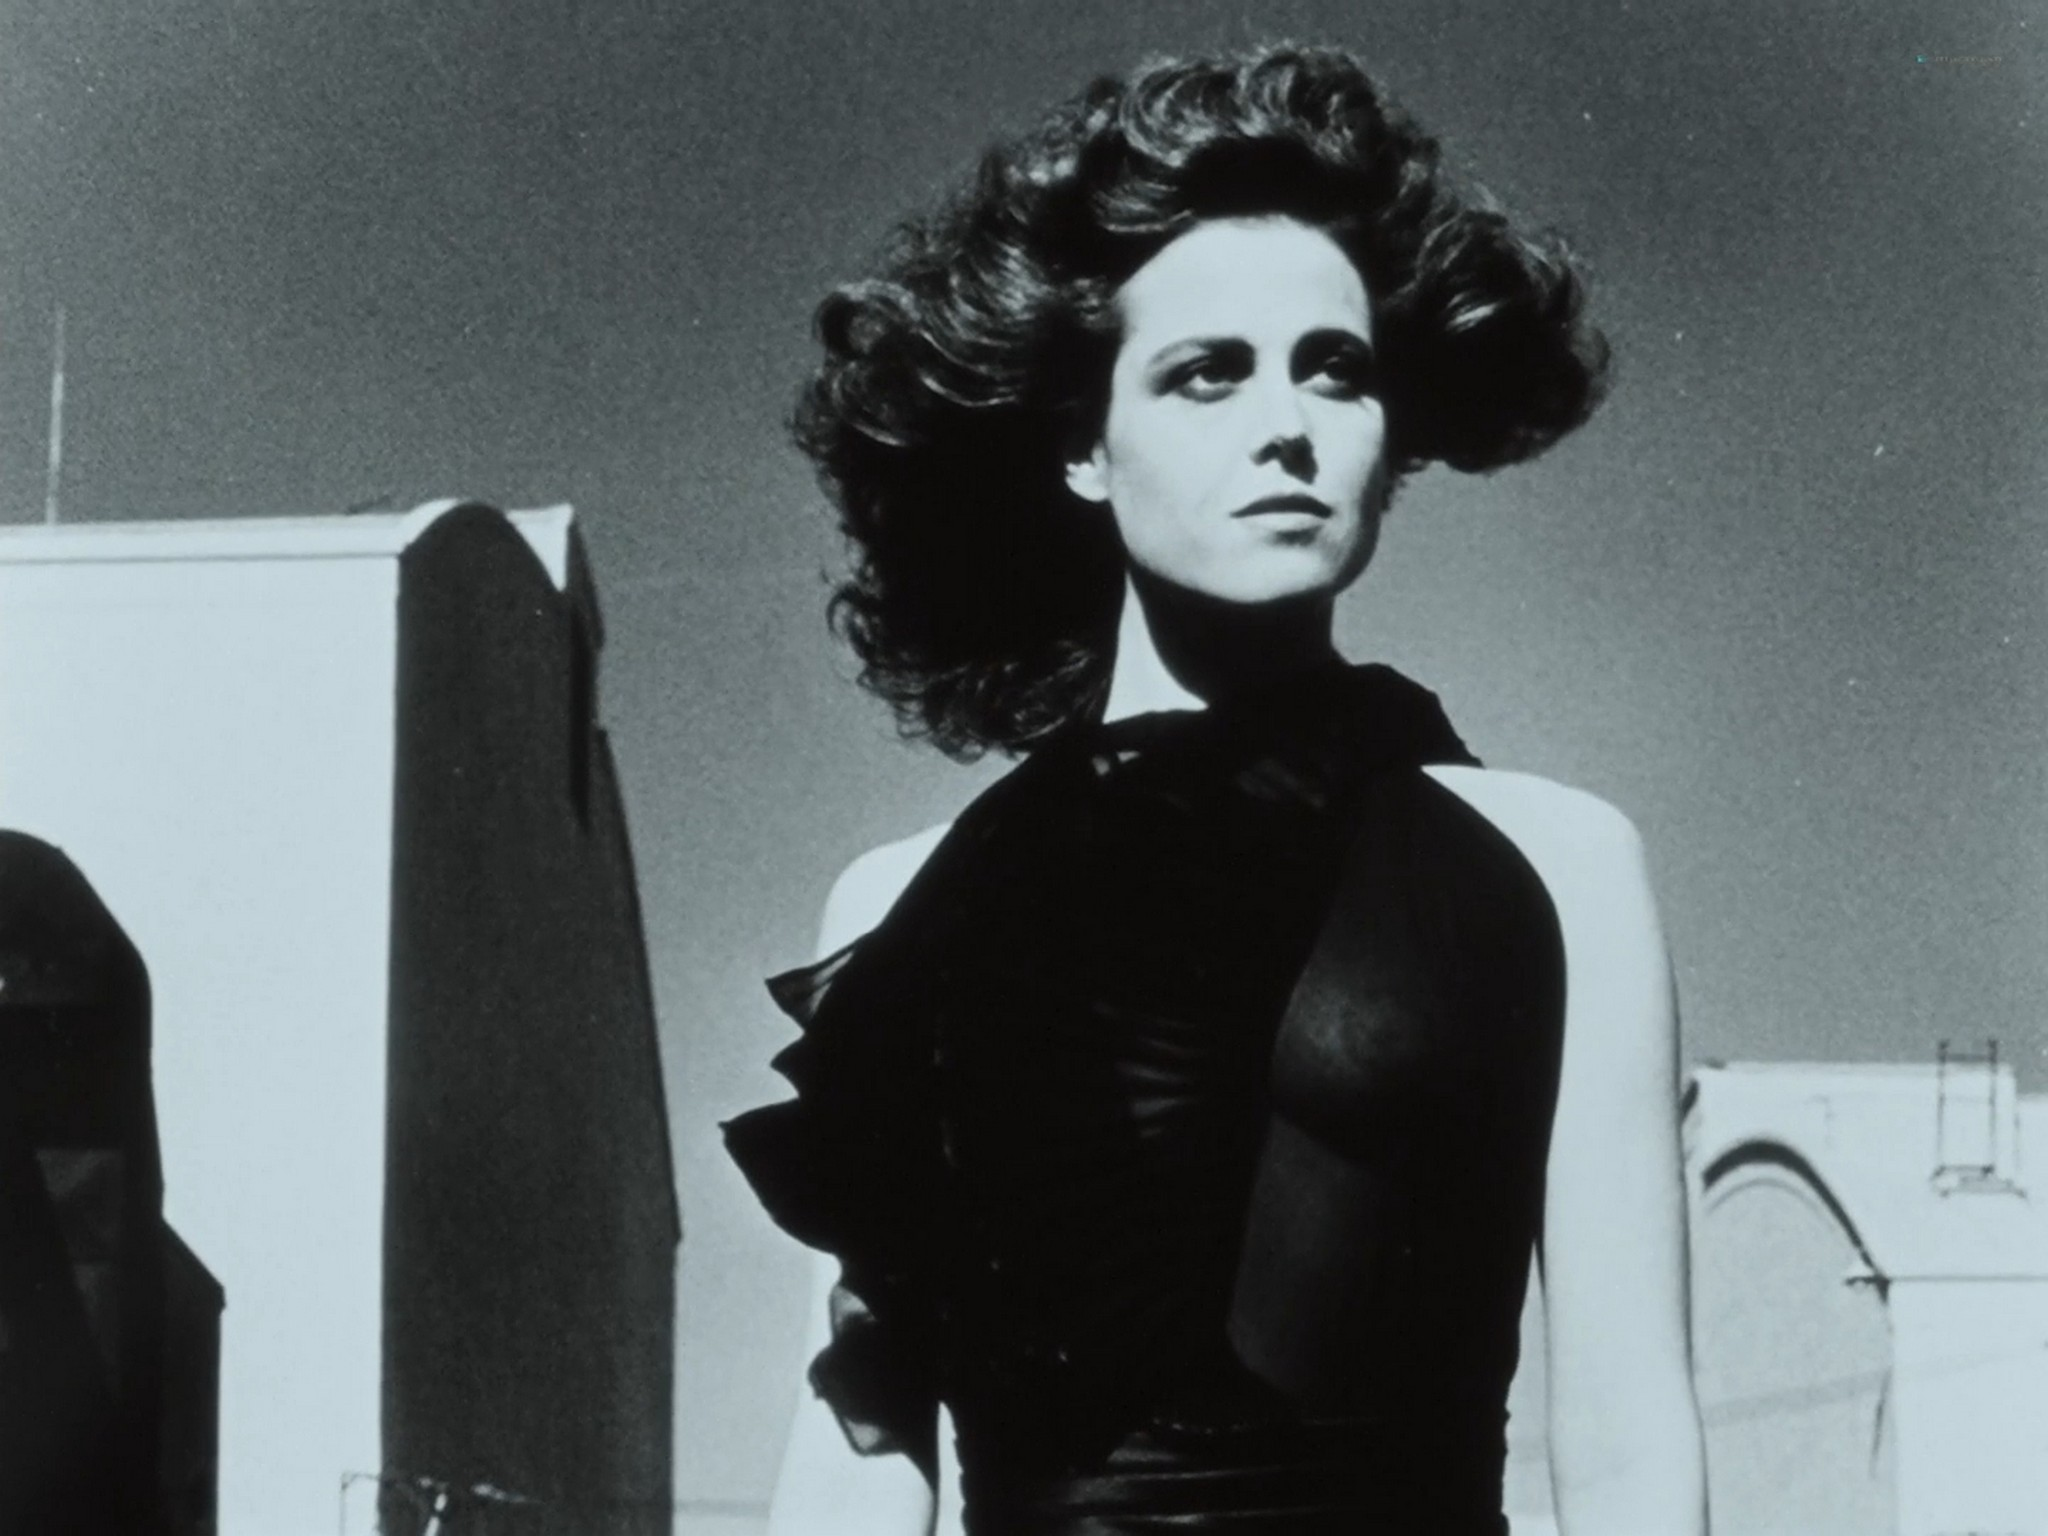 Sigourney Weaver hot Charlotte Rampling nude others nude most full frontal Helmut Newton Frames from the Edge 1989 1080p BluRay 21